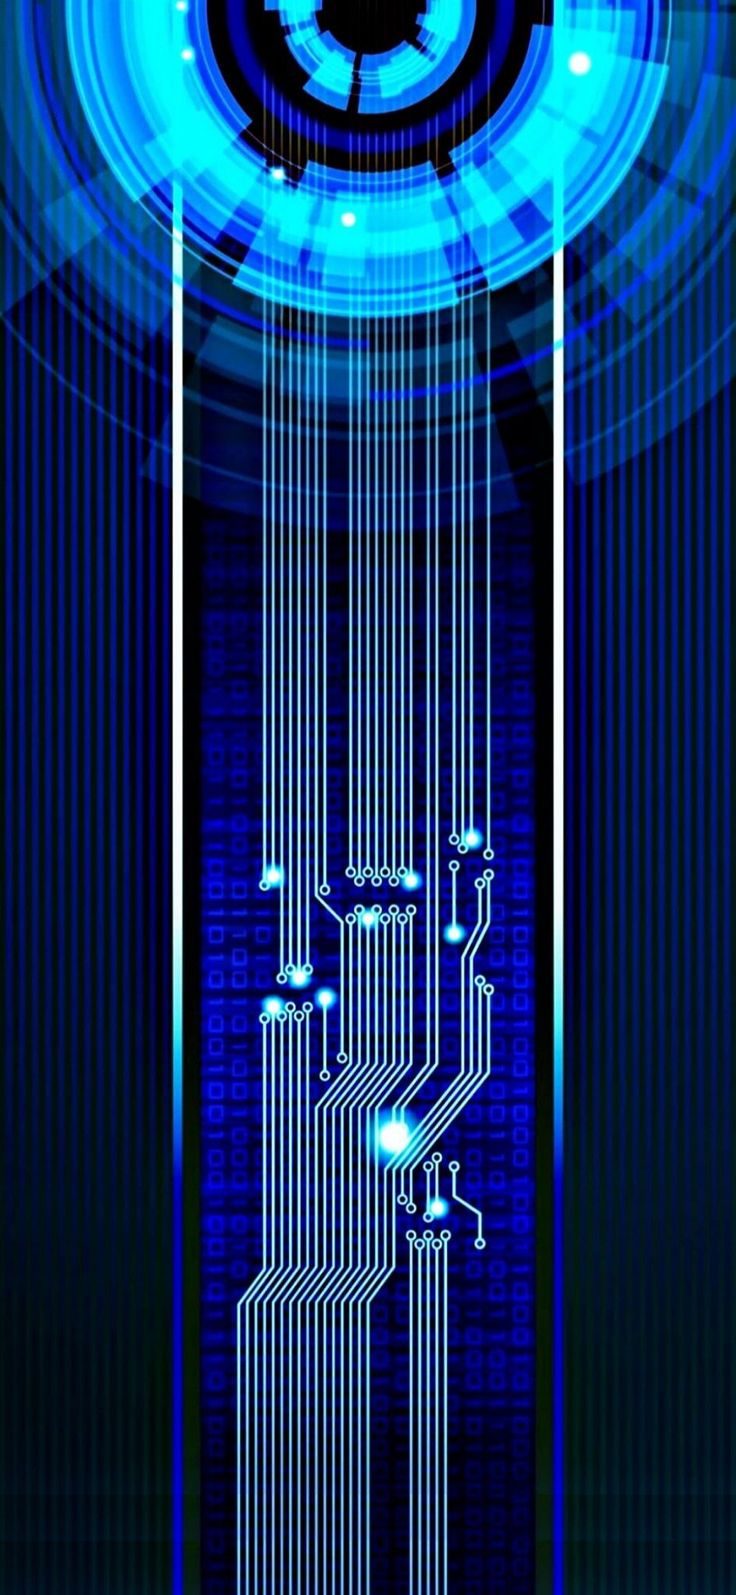 Punch Hole Wallpapers Galaxy S20, S20+, S20 Ultra in 2020